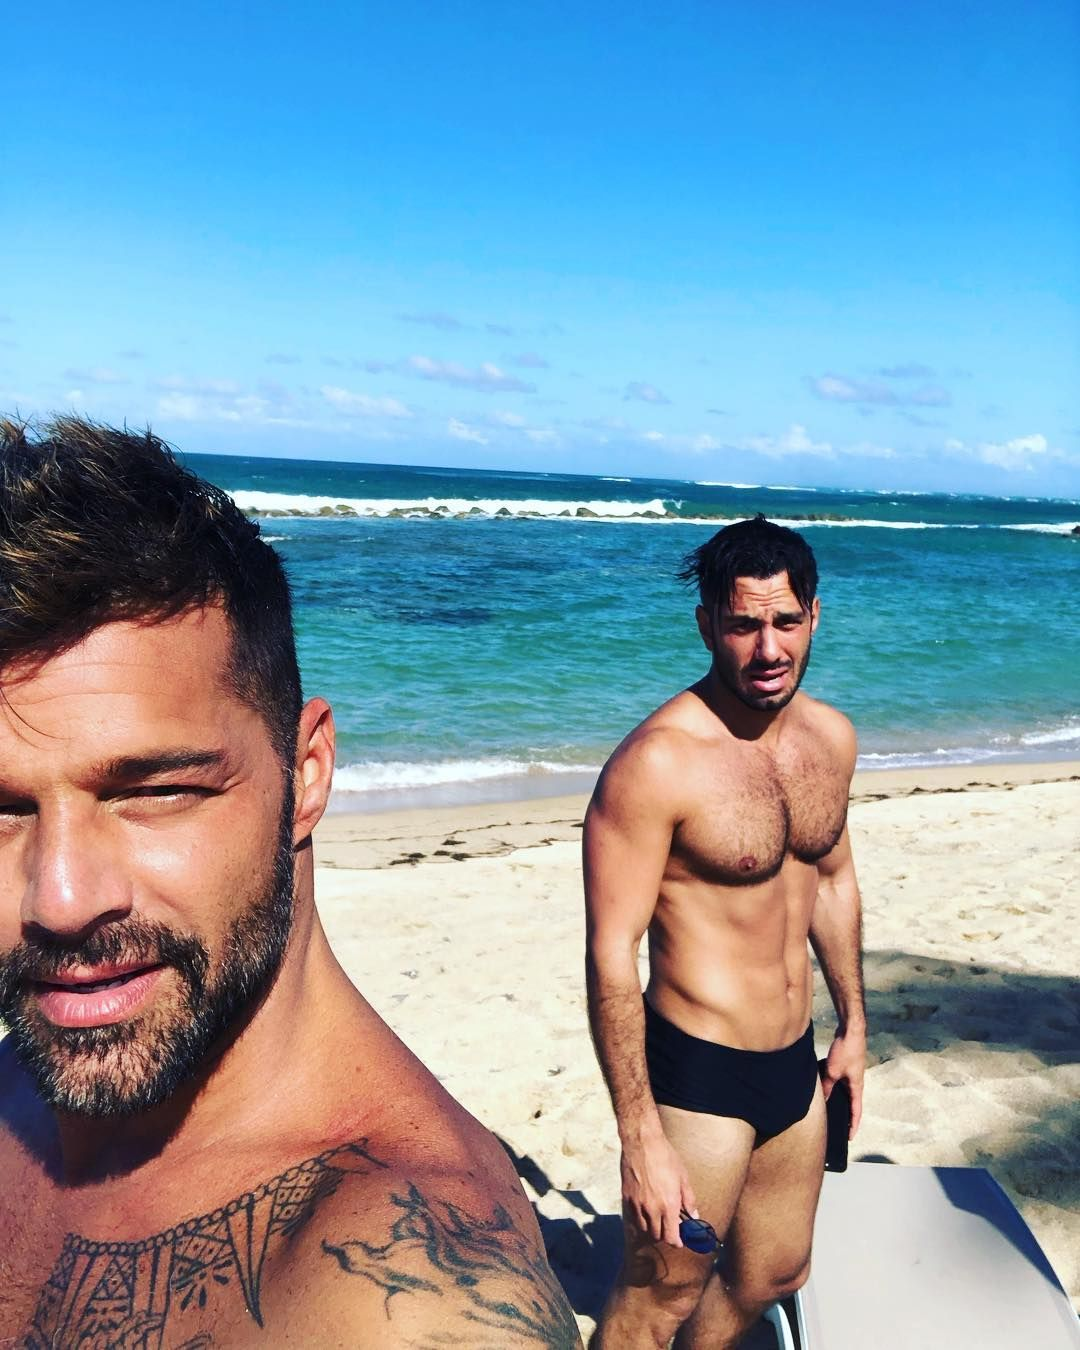 Ste Mar Sana With Images Ricky Martin Hairy Muscle Men